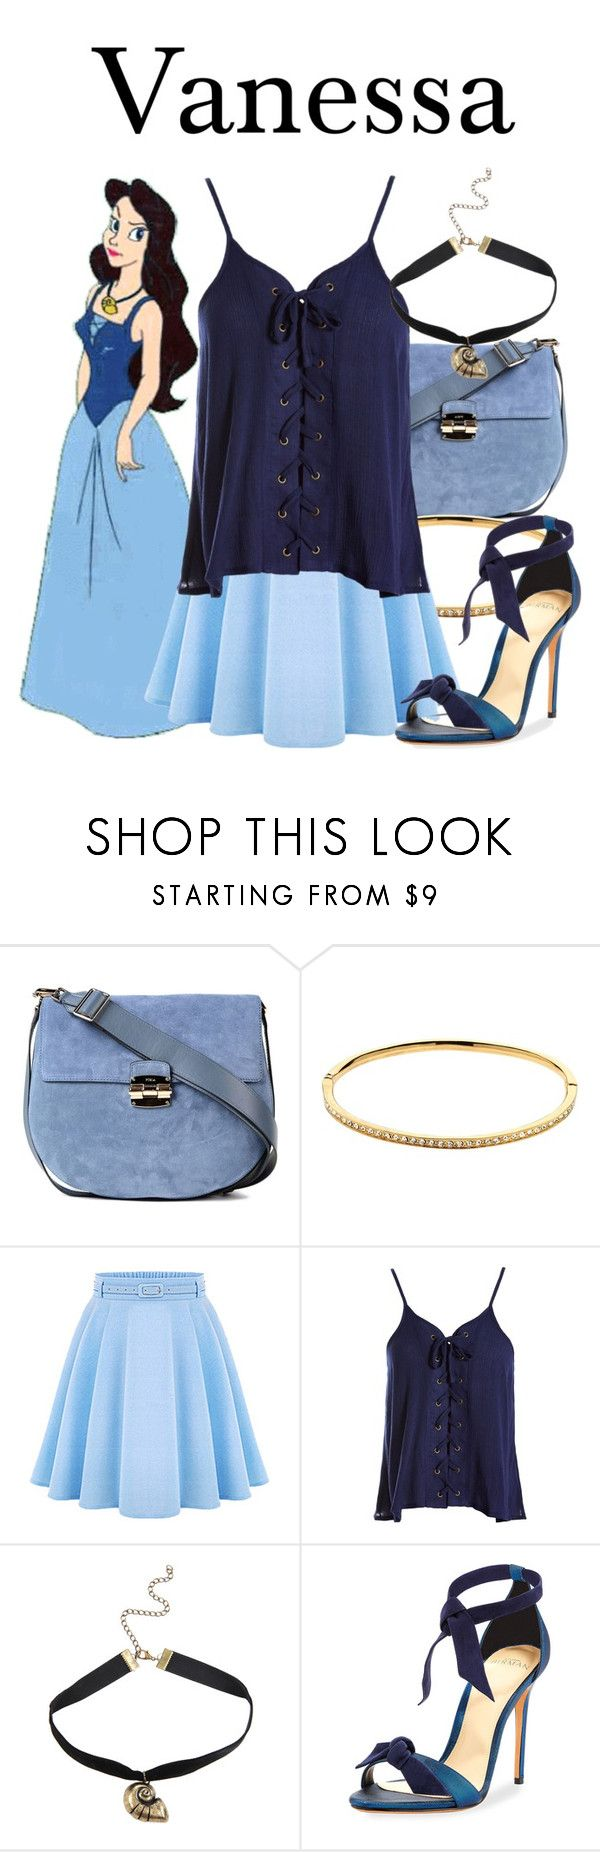 """Vanessa"" by megan-vanwinkle ❤ liked on Polyvore featuring Furla, Melissa Odabash, WithChic, Sans Souci, Disney, Alexandre Birman, disney and polyvoreeditorial"